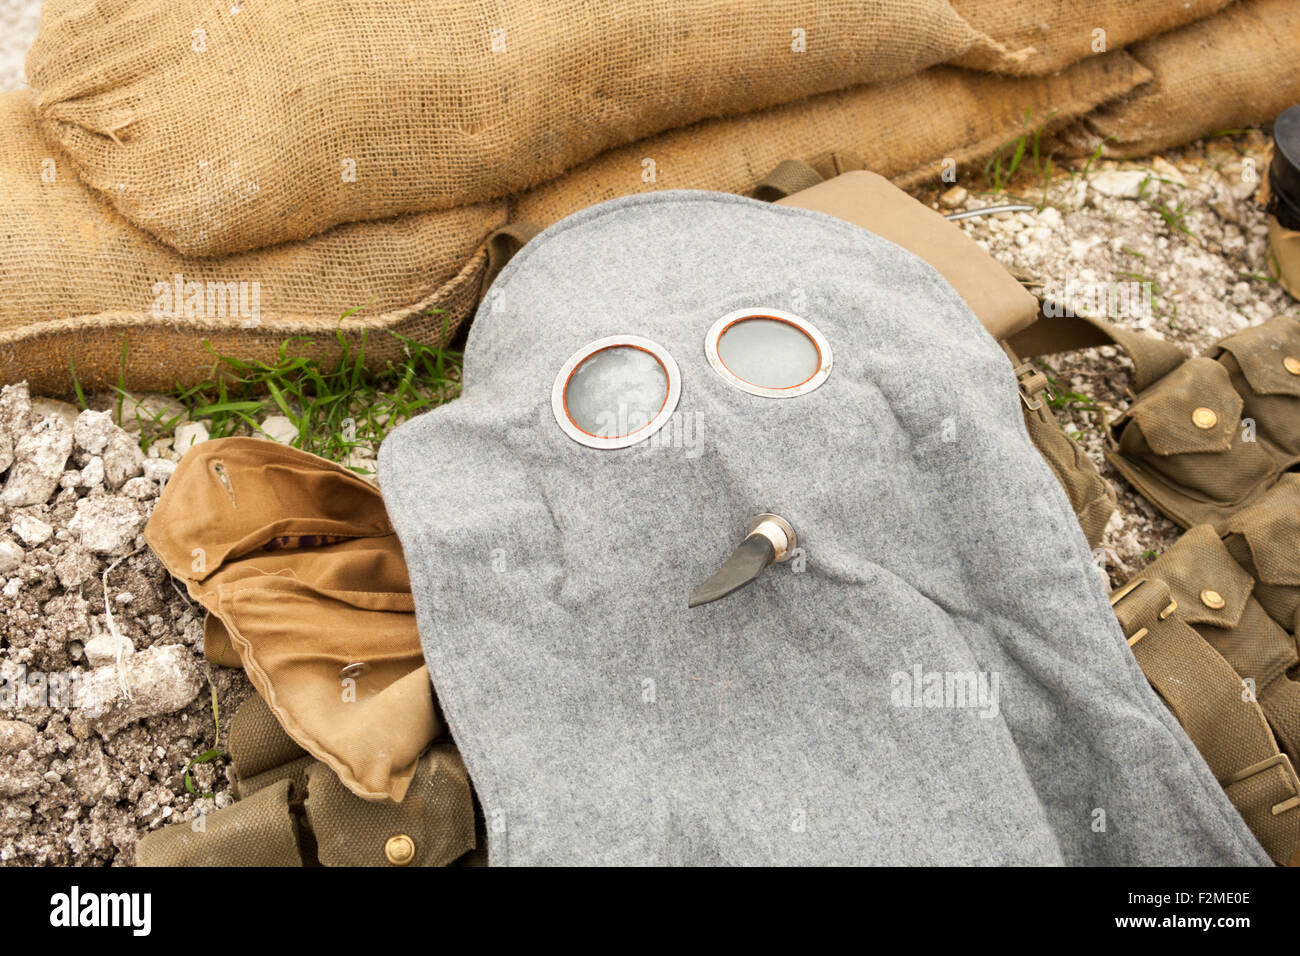 World War One gas mask or respirator. Not real but replica. With sandbags. - Stock Image